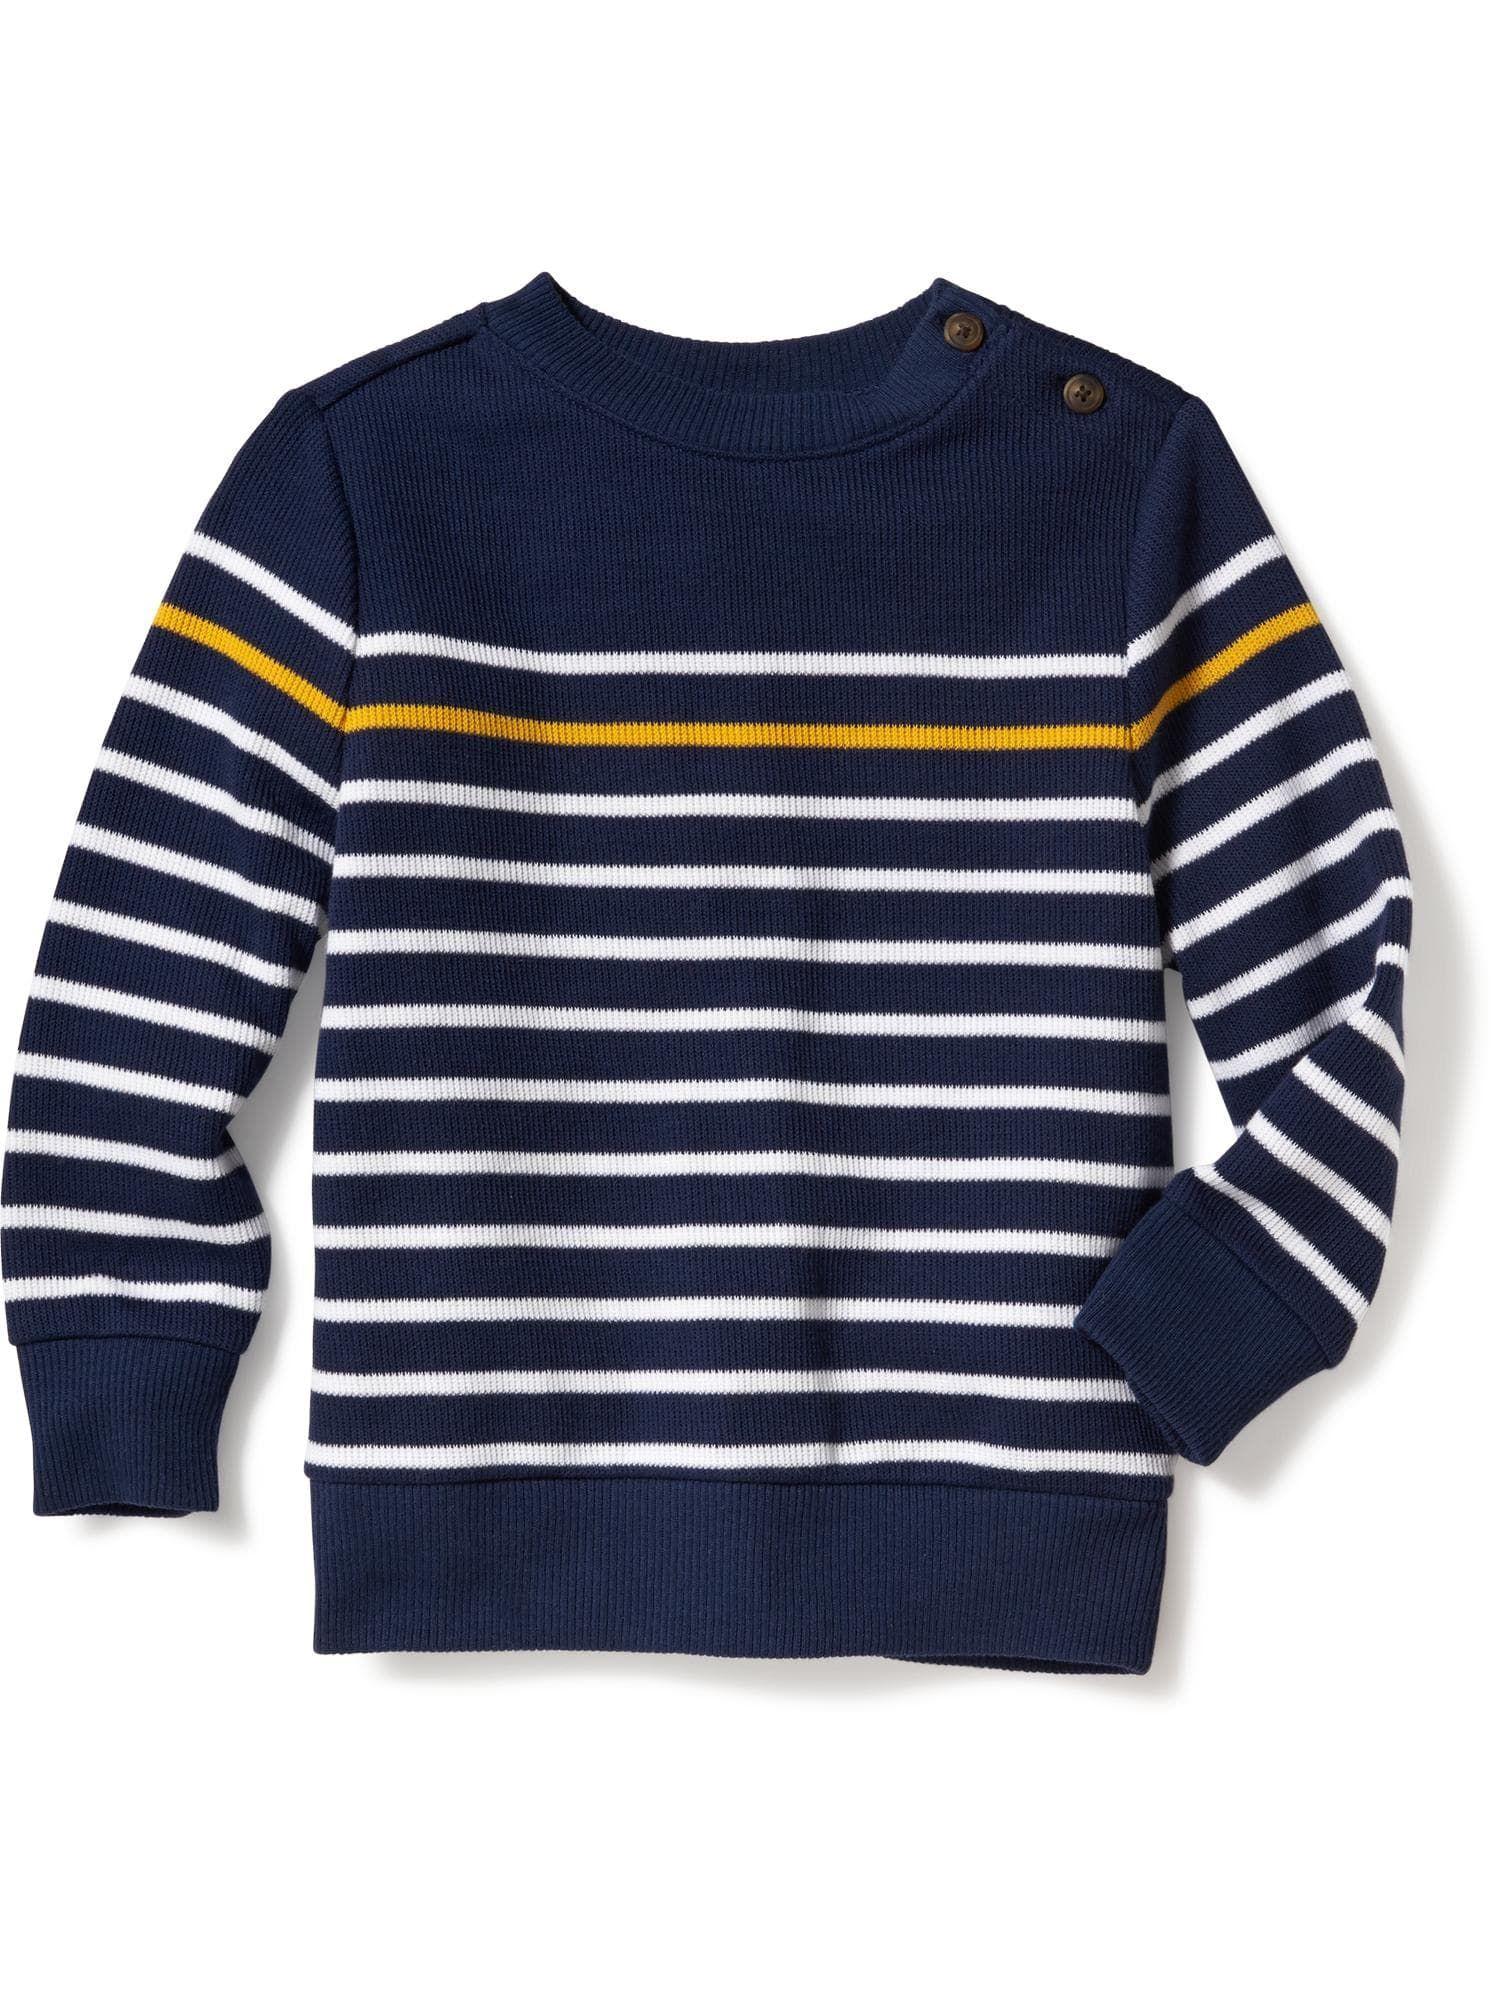 French Rib Crew Neck Sweater For Toddler Boys Old Navy Little